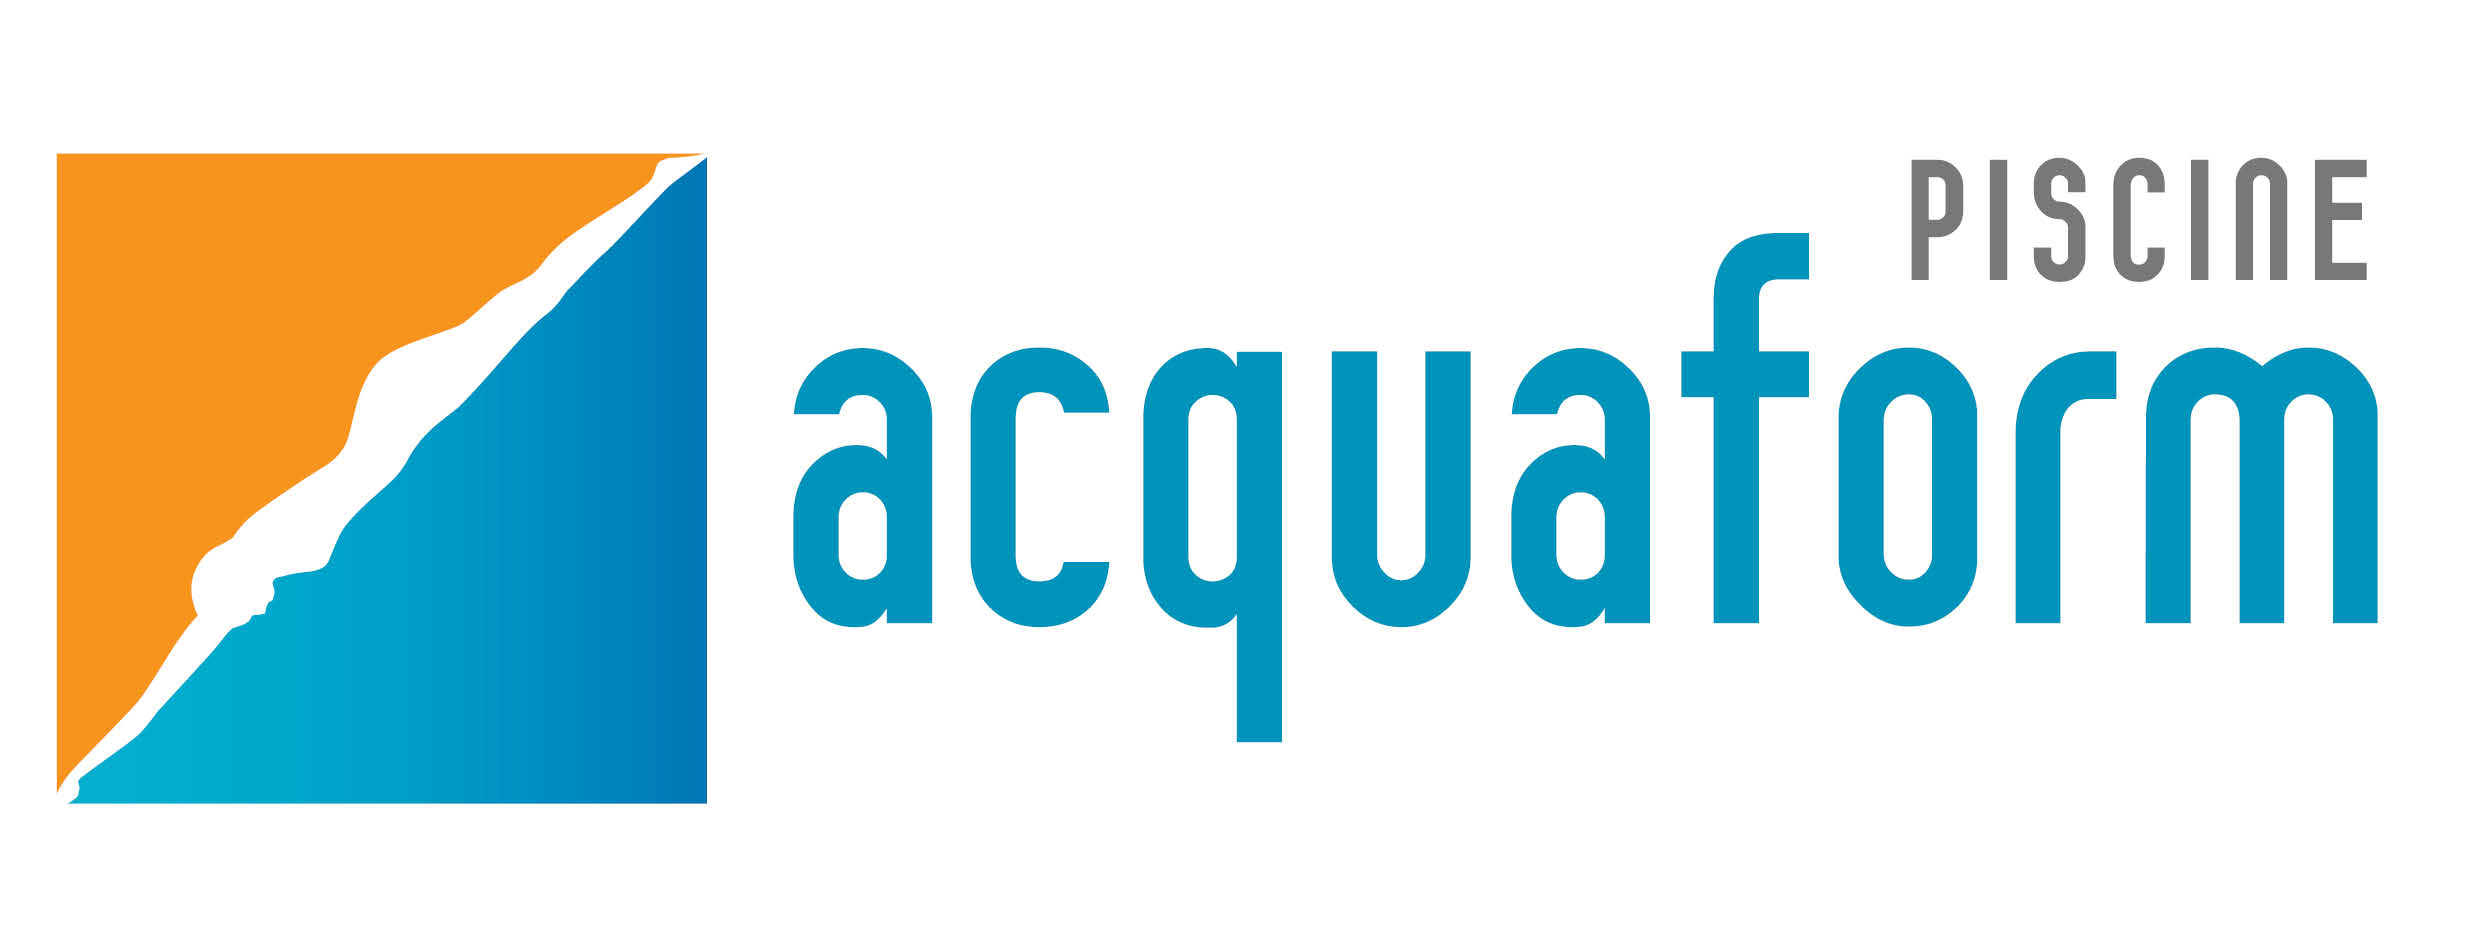 Acquaform s.r.l.